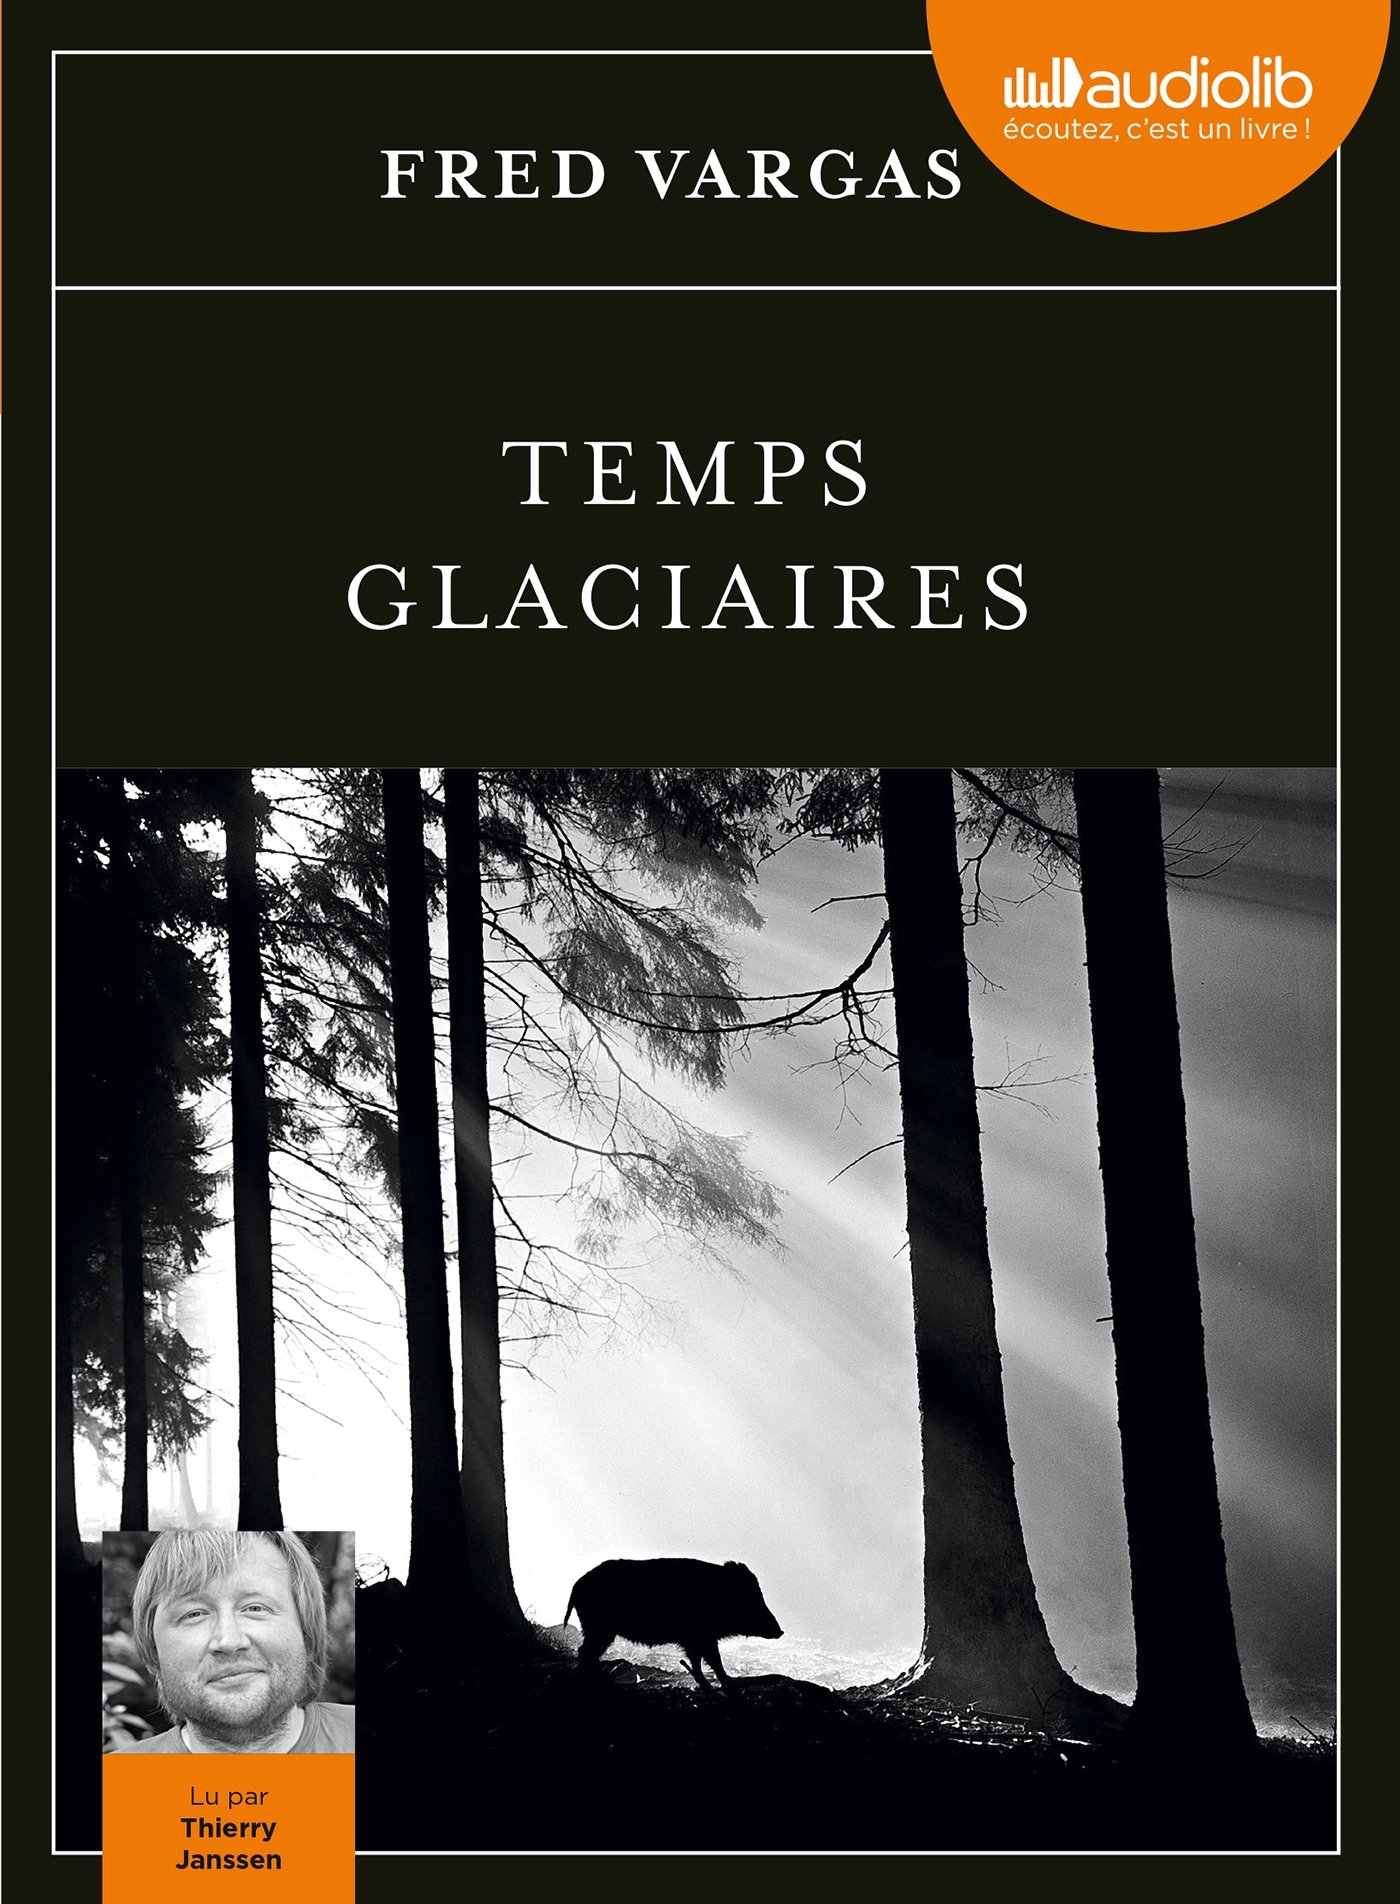 [Ebooks Audio] FRED VARGAS Temps glaciaires [2015] [mp3 192 kbps]